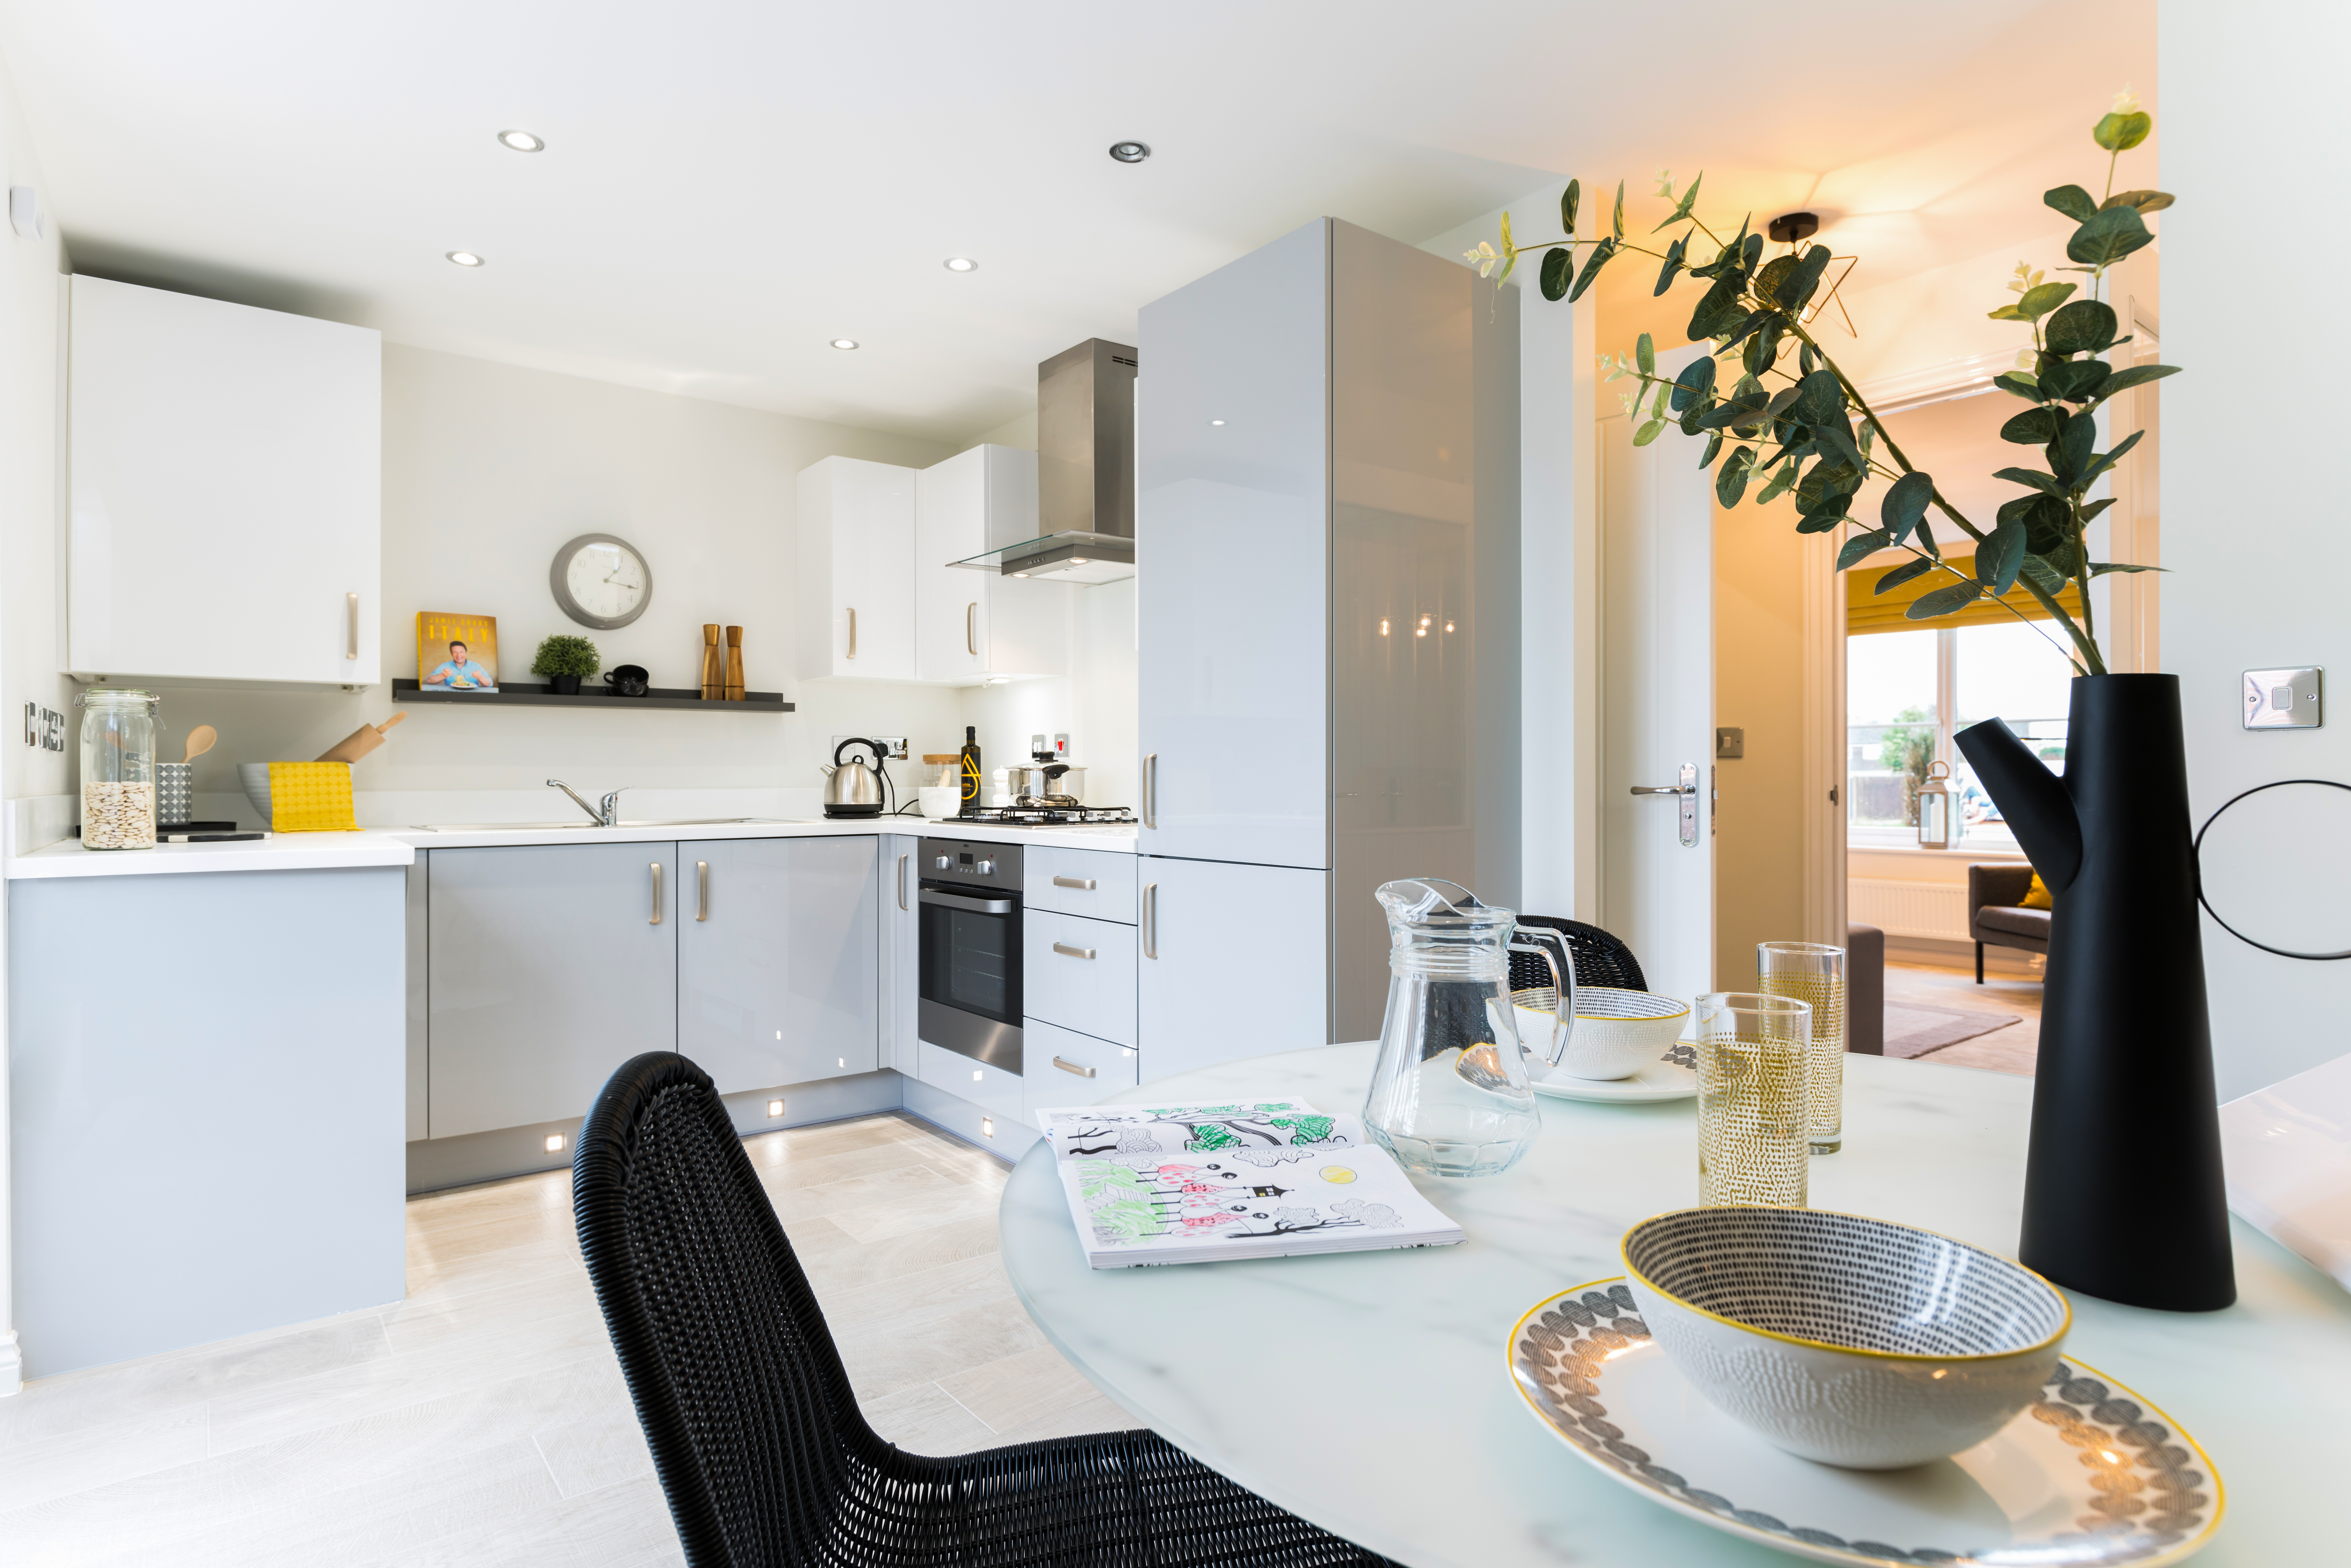 TW NM_Marston Grange_Earlsford_Kitchen 2